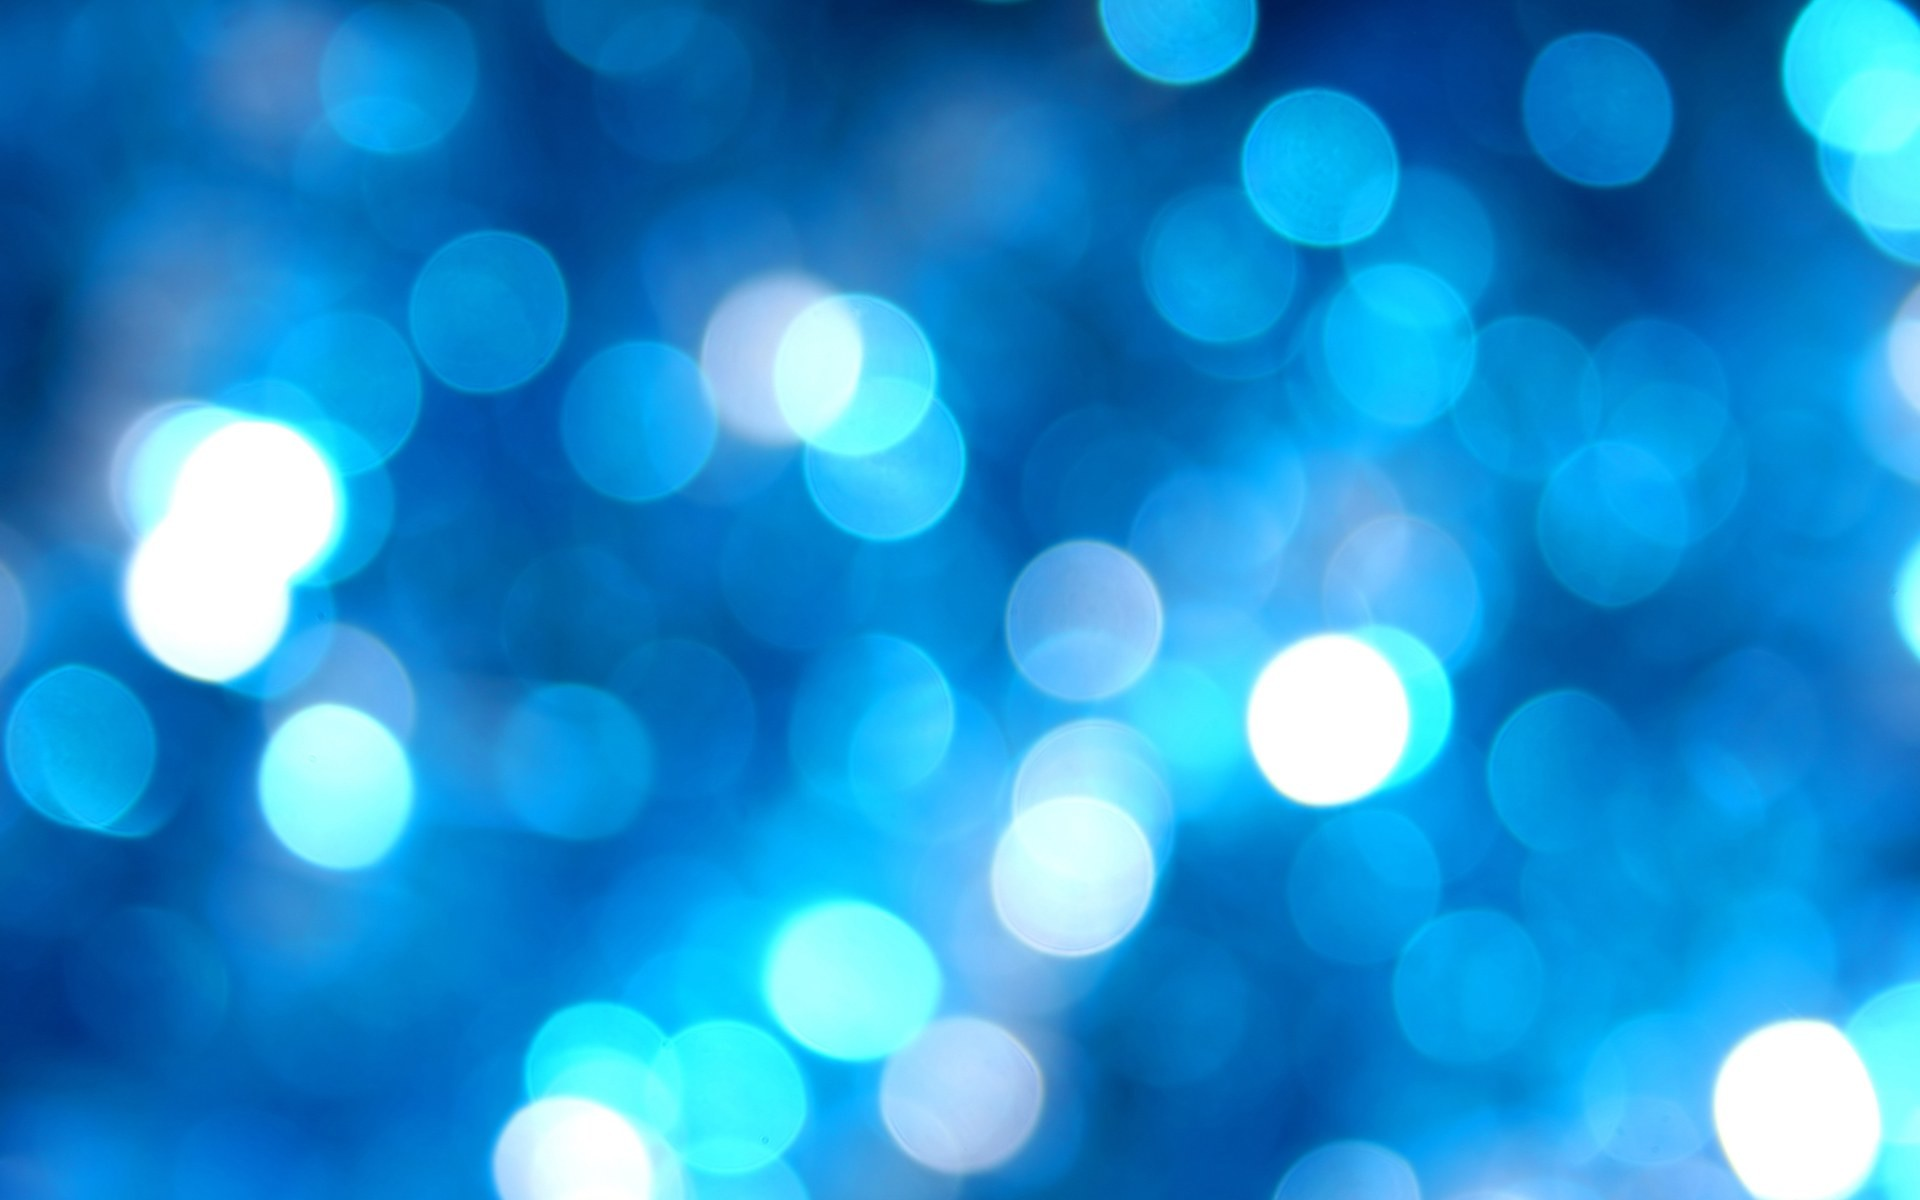 1920x1200 Blue Girly Backgrounds